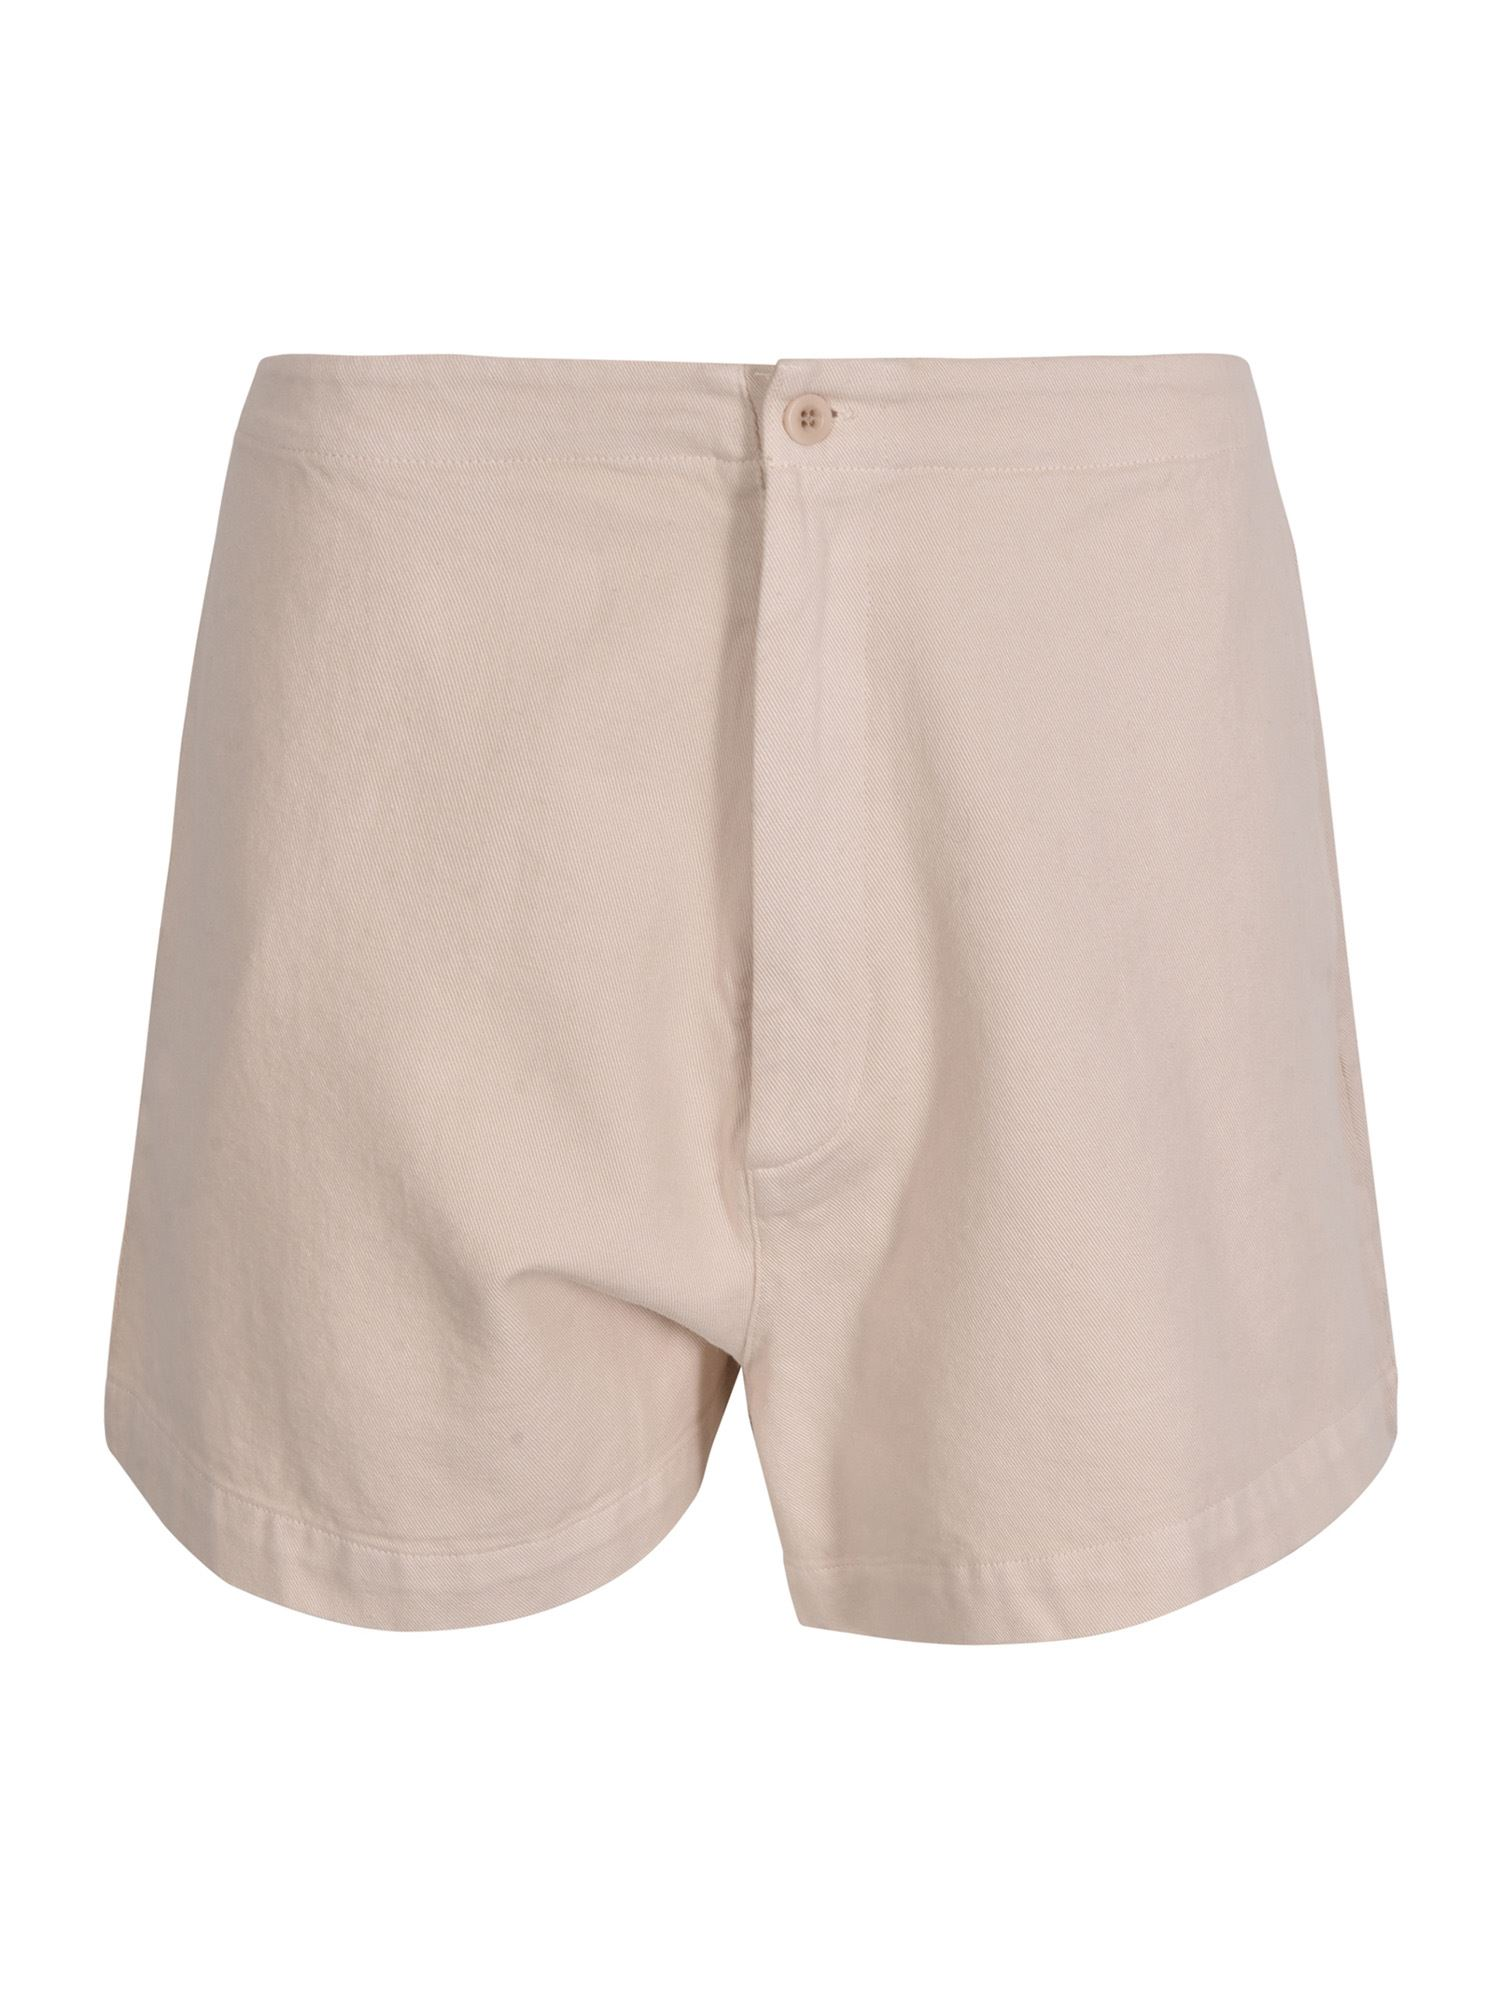 Labo.art COTTON SHORTS IN ROPE COLOR